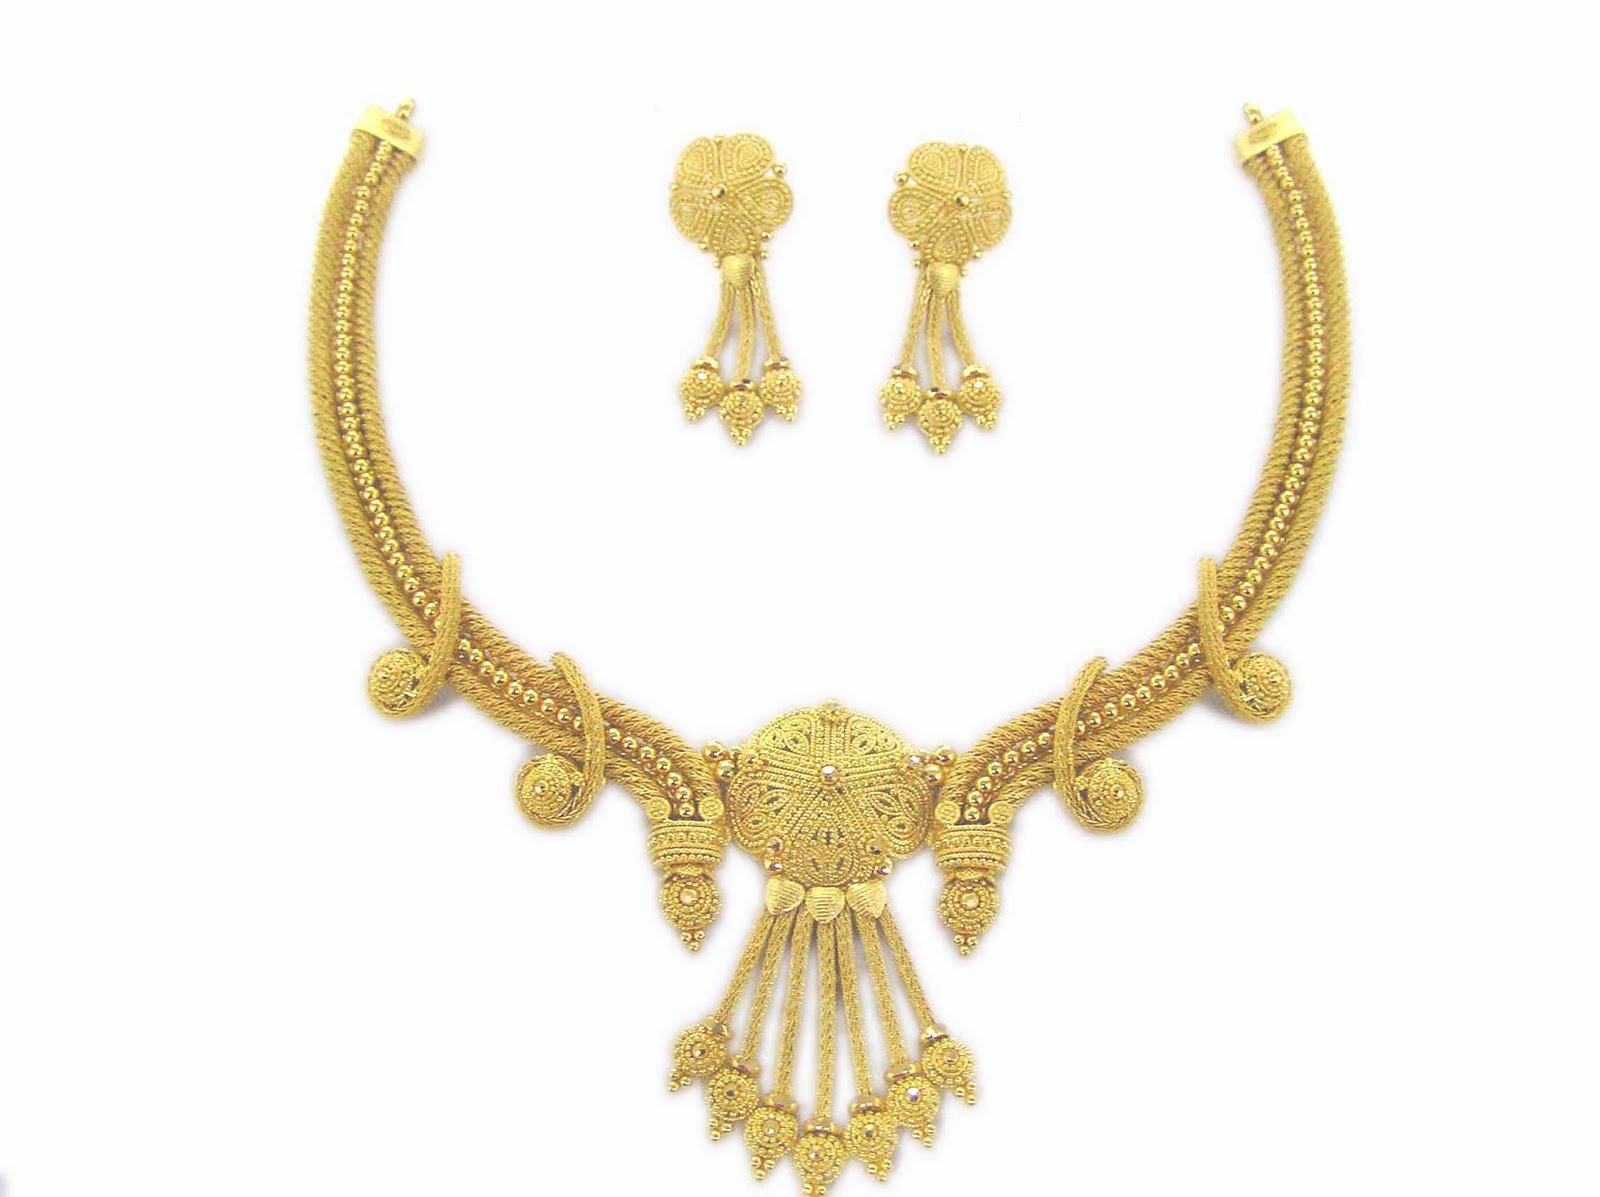 In Ancient Greece, delicately made gold necklaces created with repouss The Edwardian era saw a resurgence of pearl necklaces, in addition to a dog-collar style of necklace made of gold or platinum with inset diamonds, emeralds, or rubies.